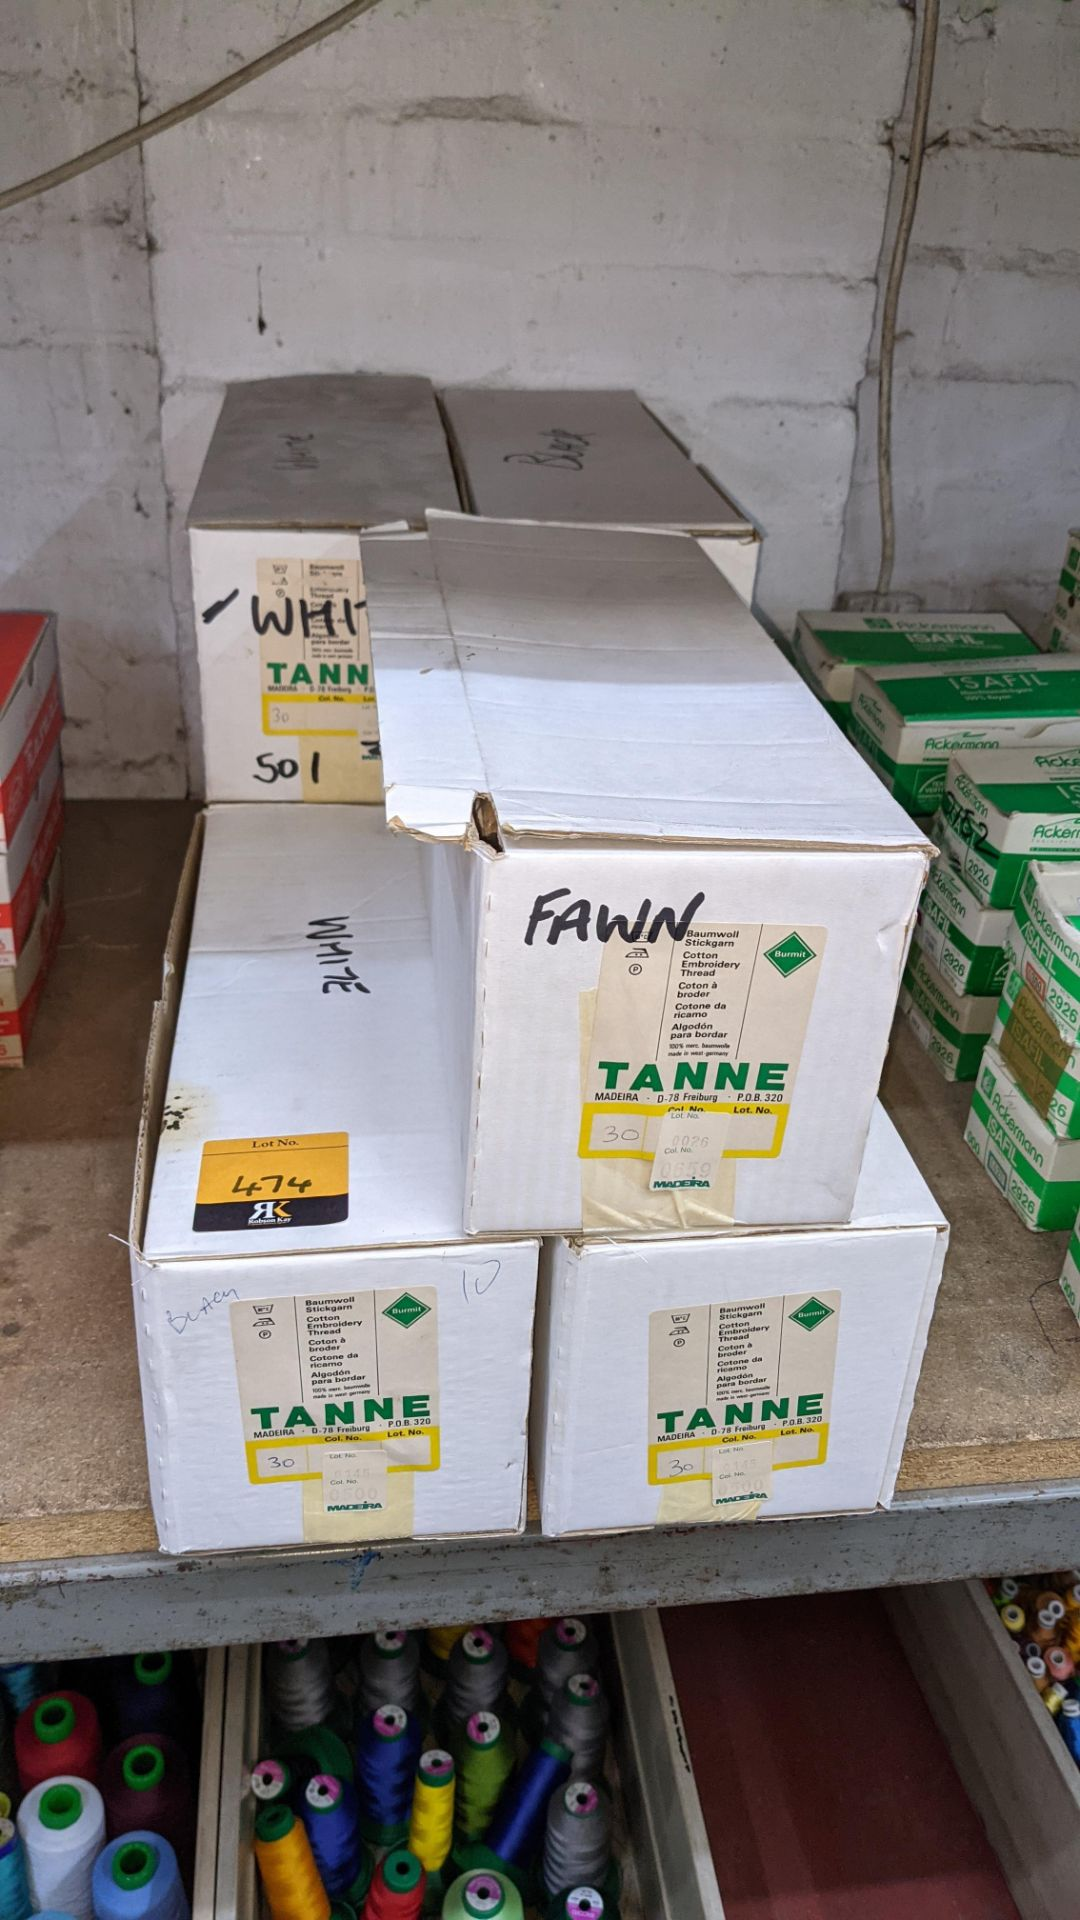 7 large boxes of Madeira Tanne cotton embroidery thread - Image 2 of 7